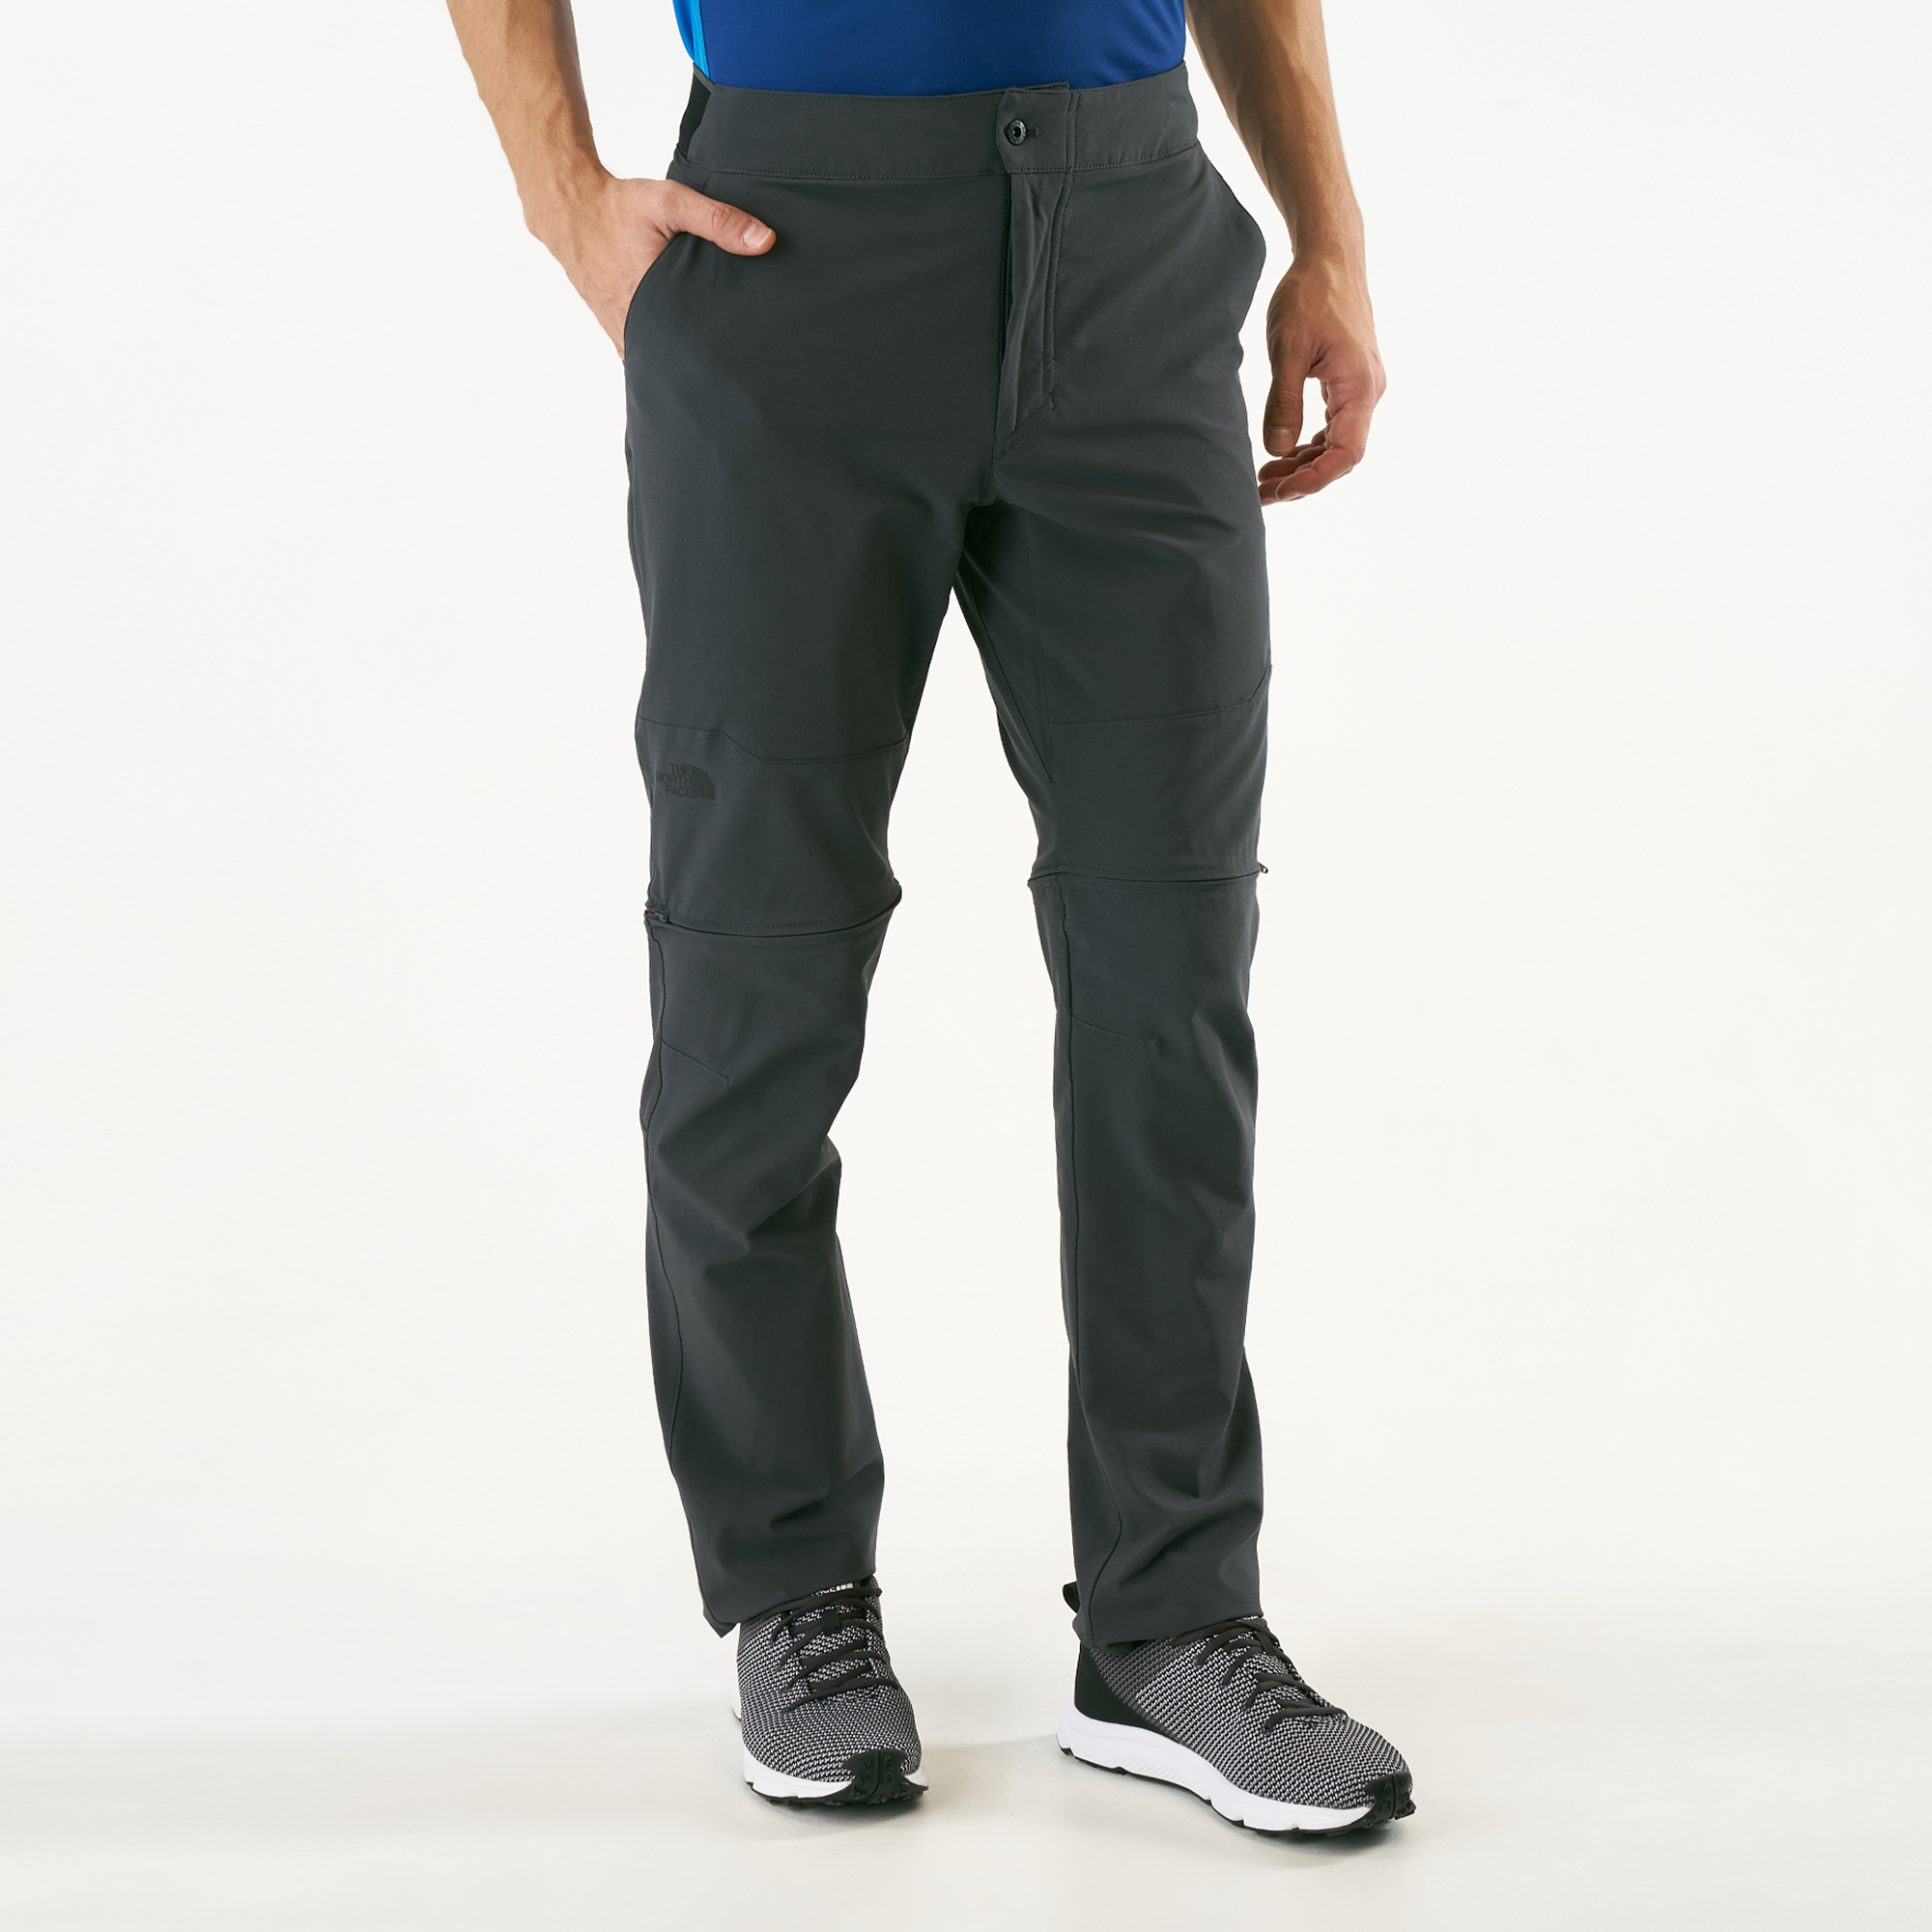 537c696f0351cf The North Face Men s Paramount Active Convertible Pants ...